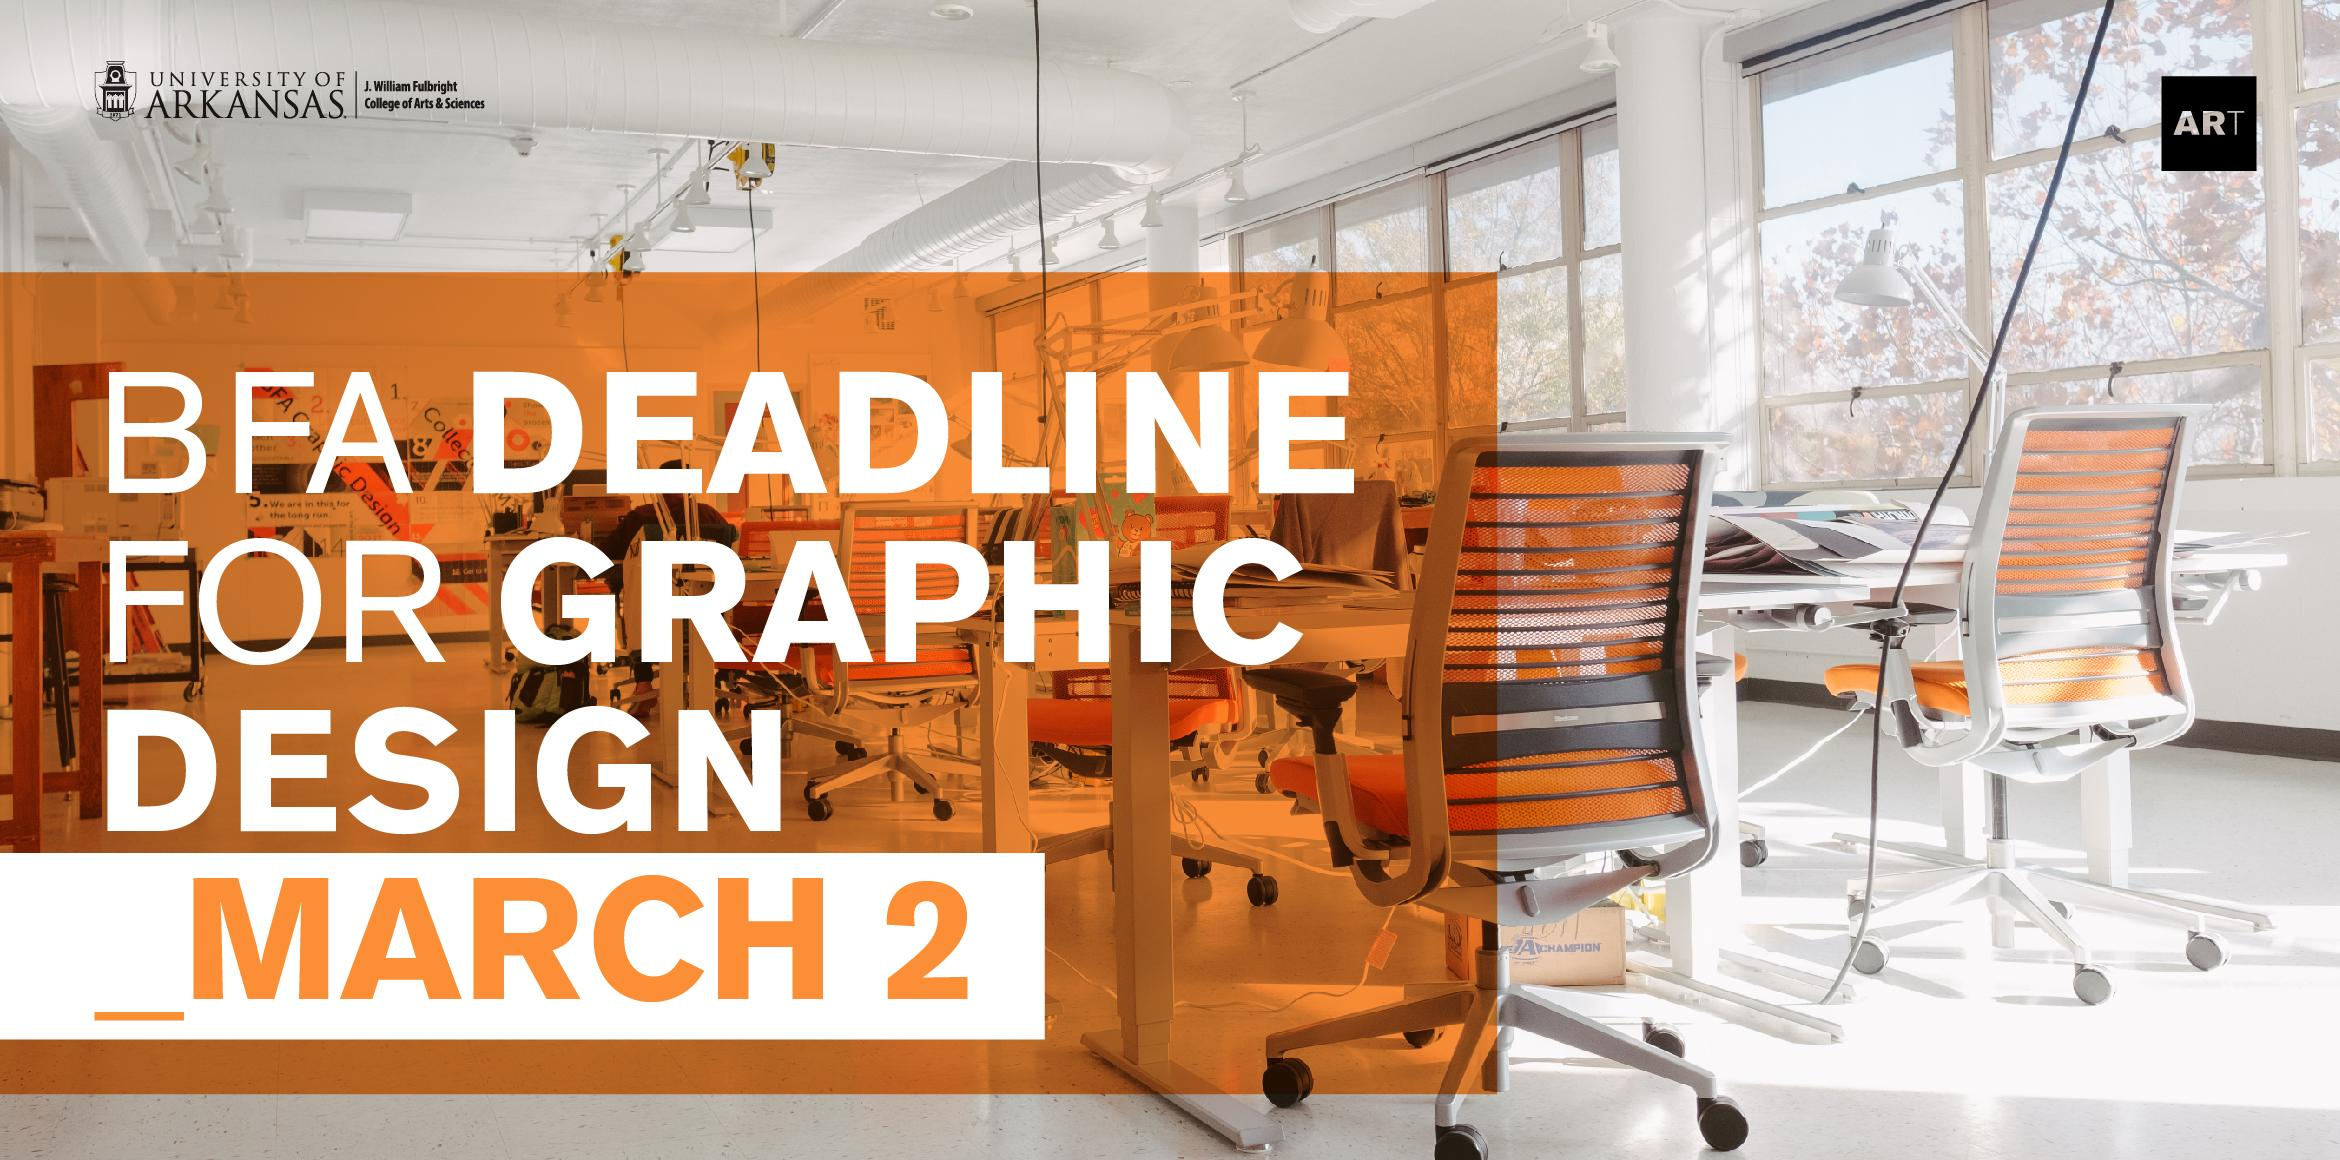 The BFA Deadline for Graphic Design is March 2